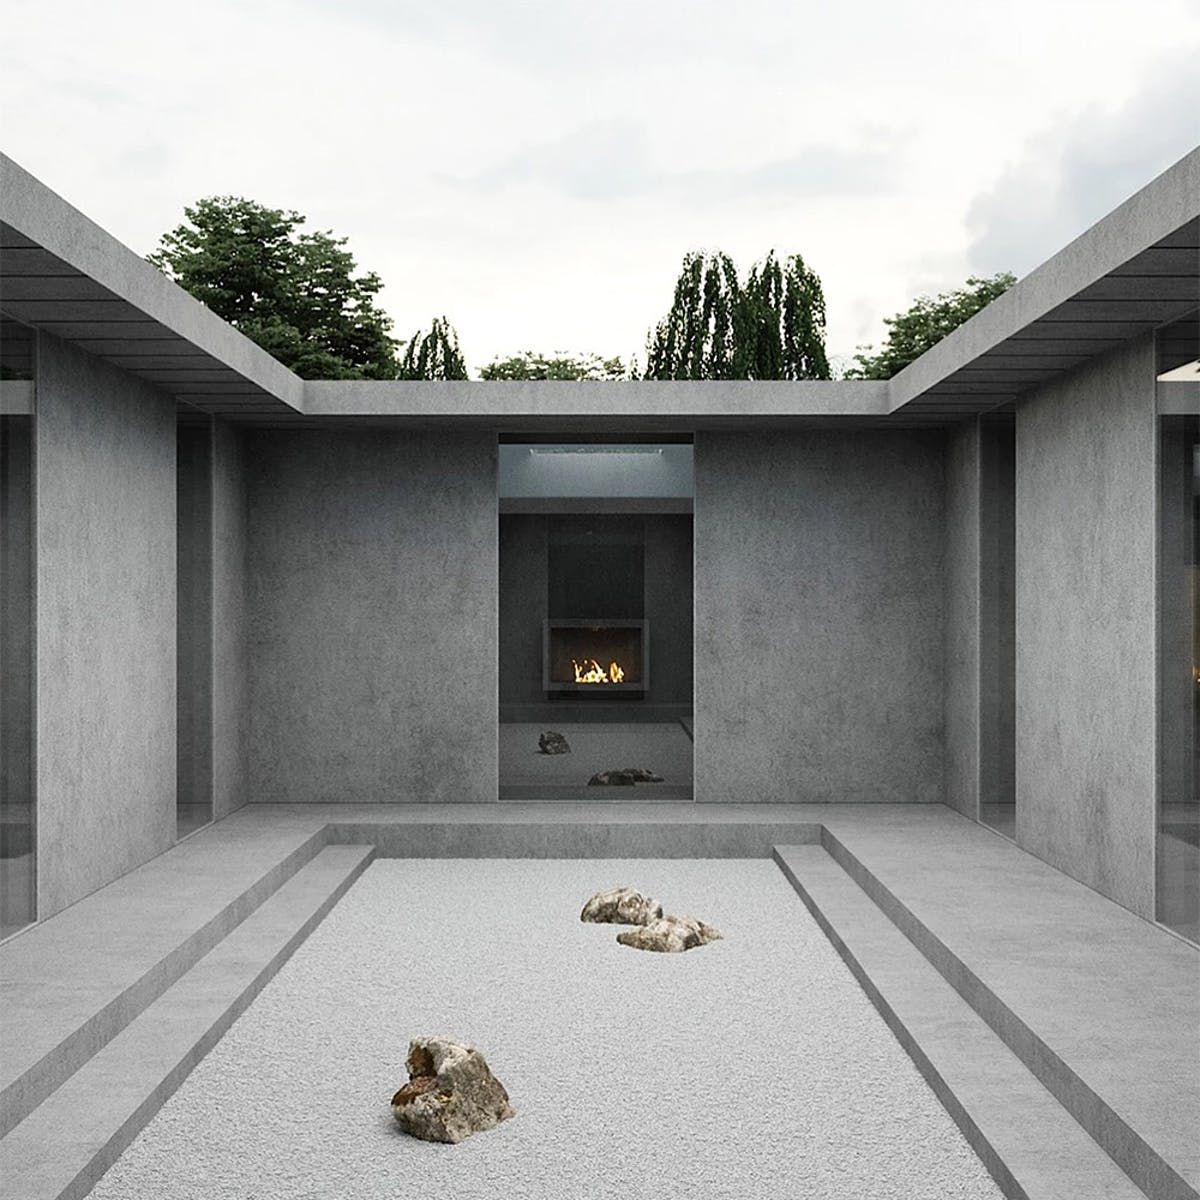 Kanye West S First Yeezy Home Project Appears To Be A Prefab Affordable Housing Scheme In 2020 Architecture Architecture House Affordable Housing